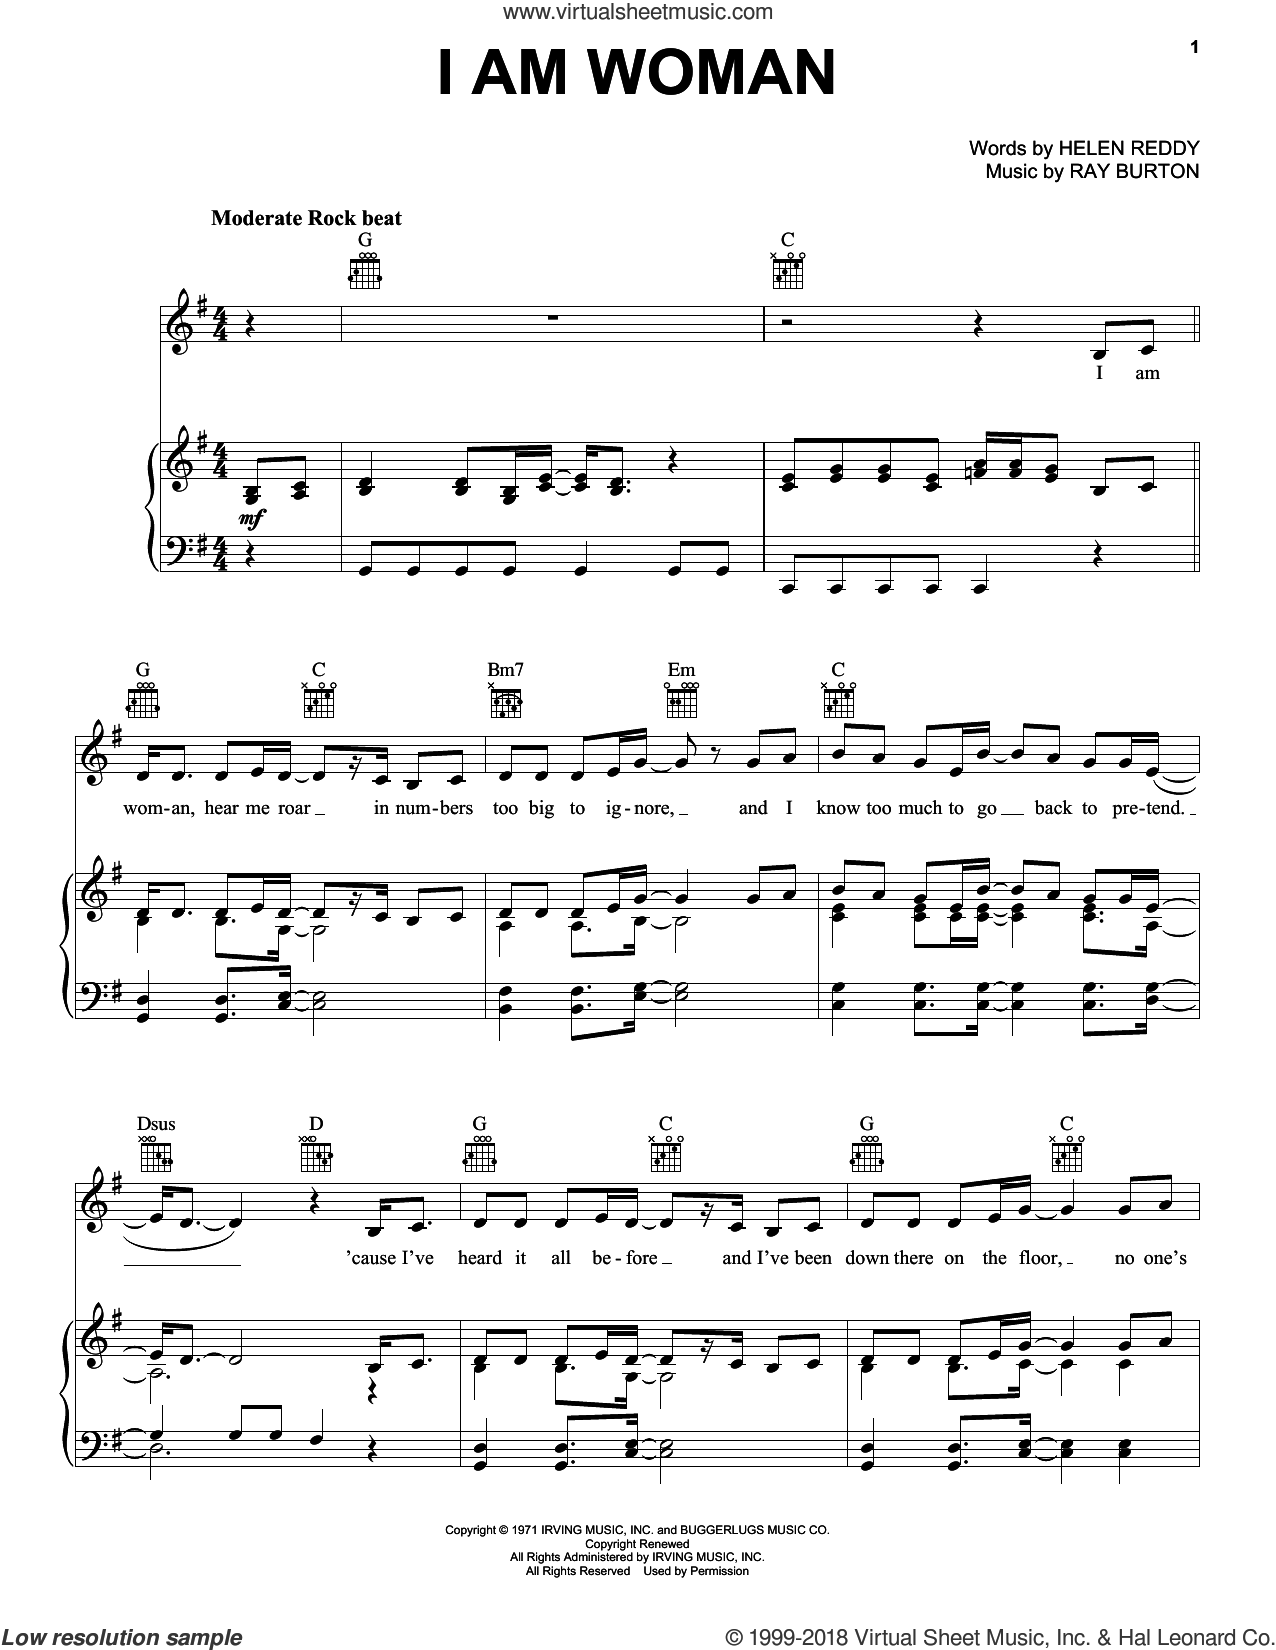 I Am Woman sheet music for voice, piano or guitar by Ray Burton and Helen Reddy. Score Image Preview.